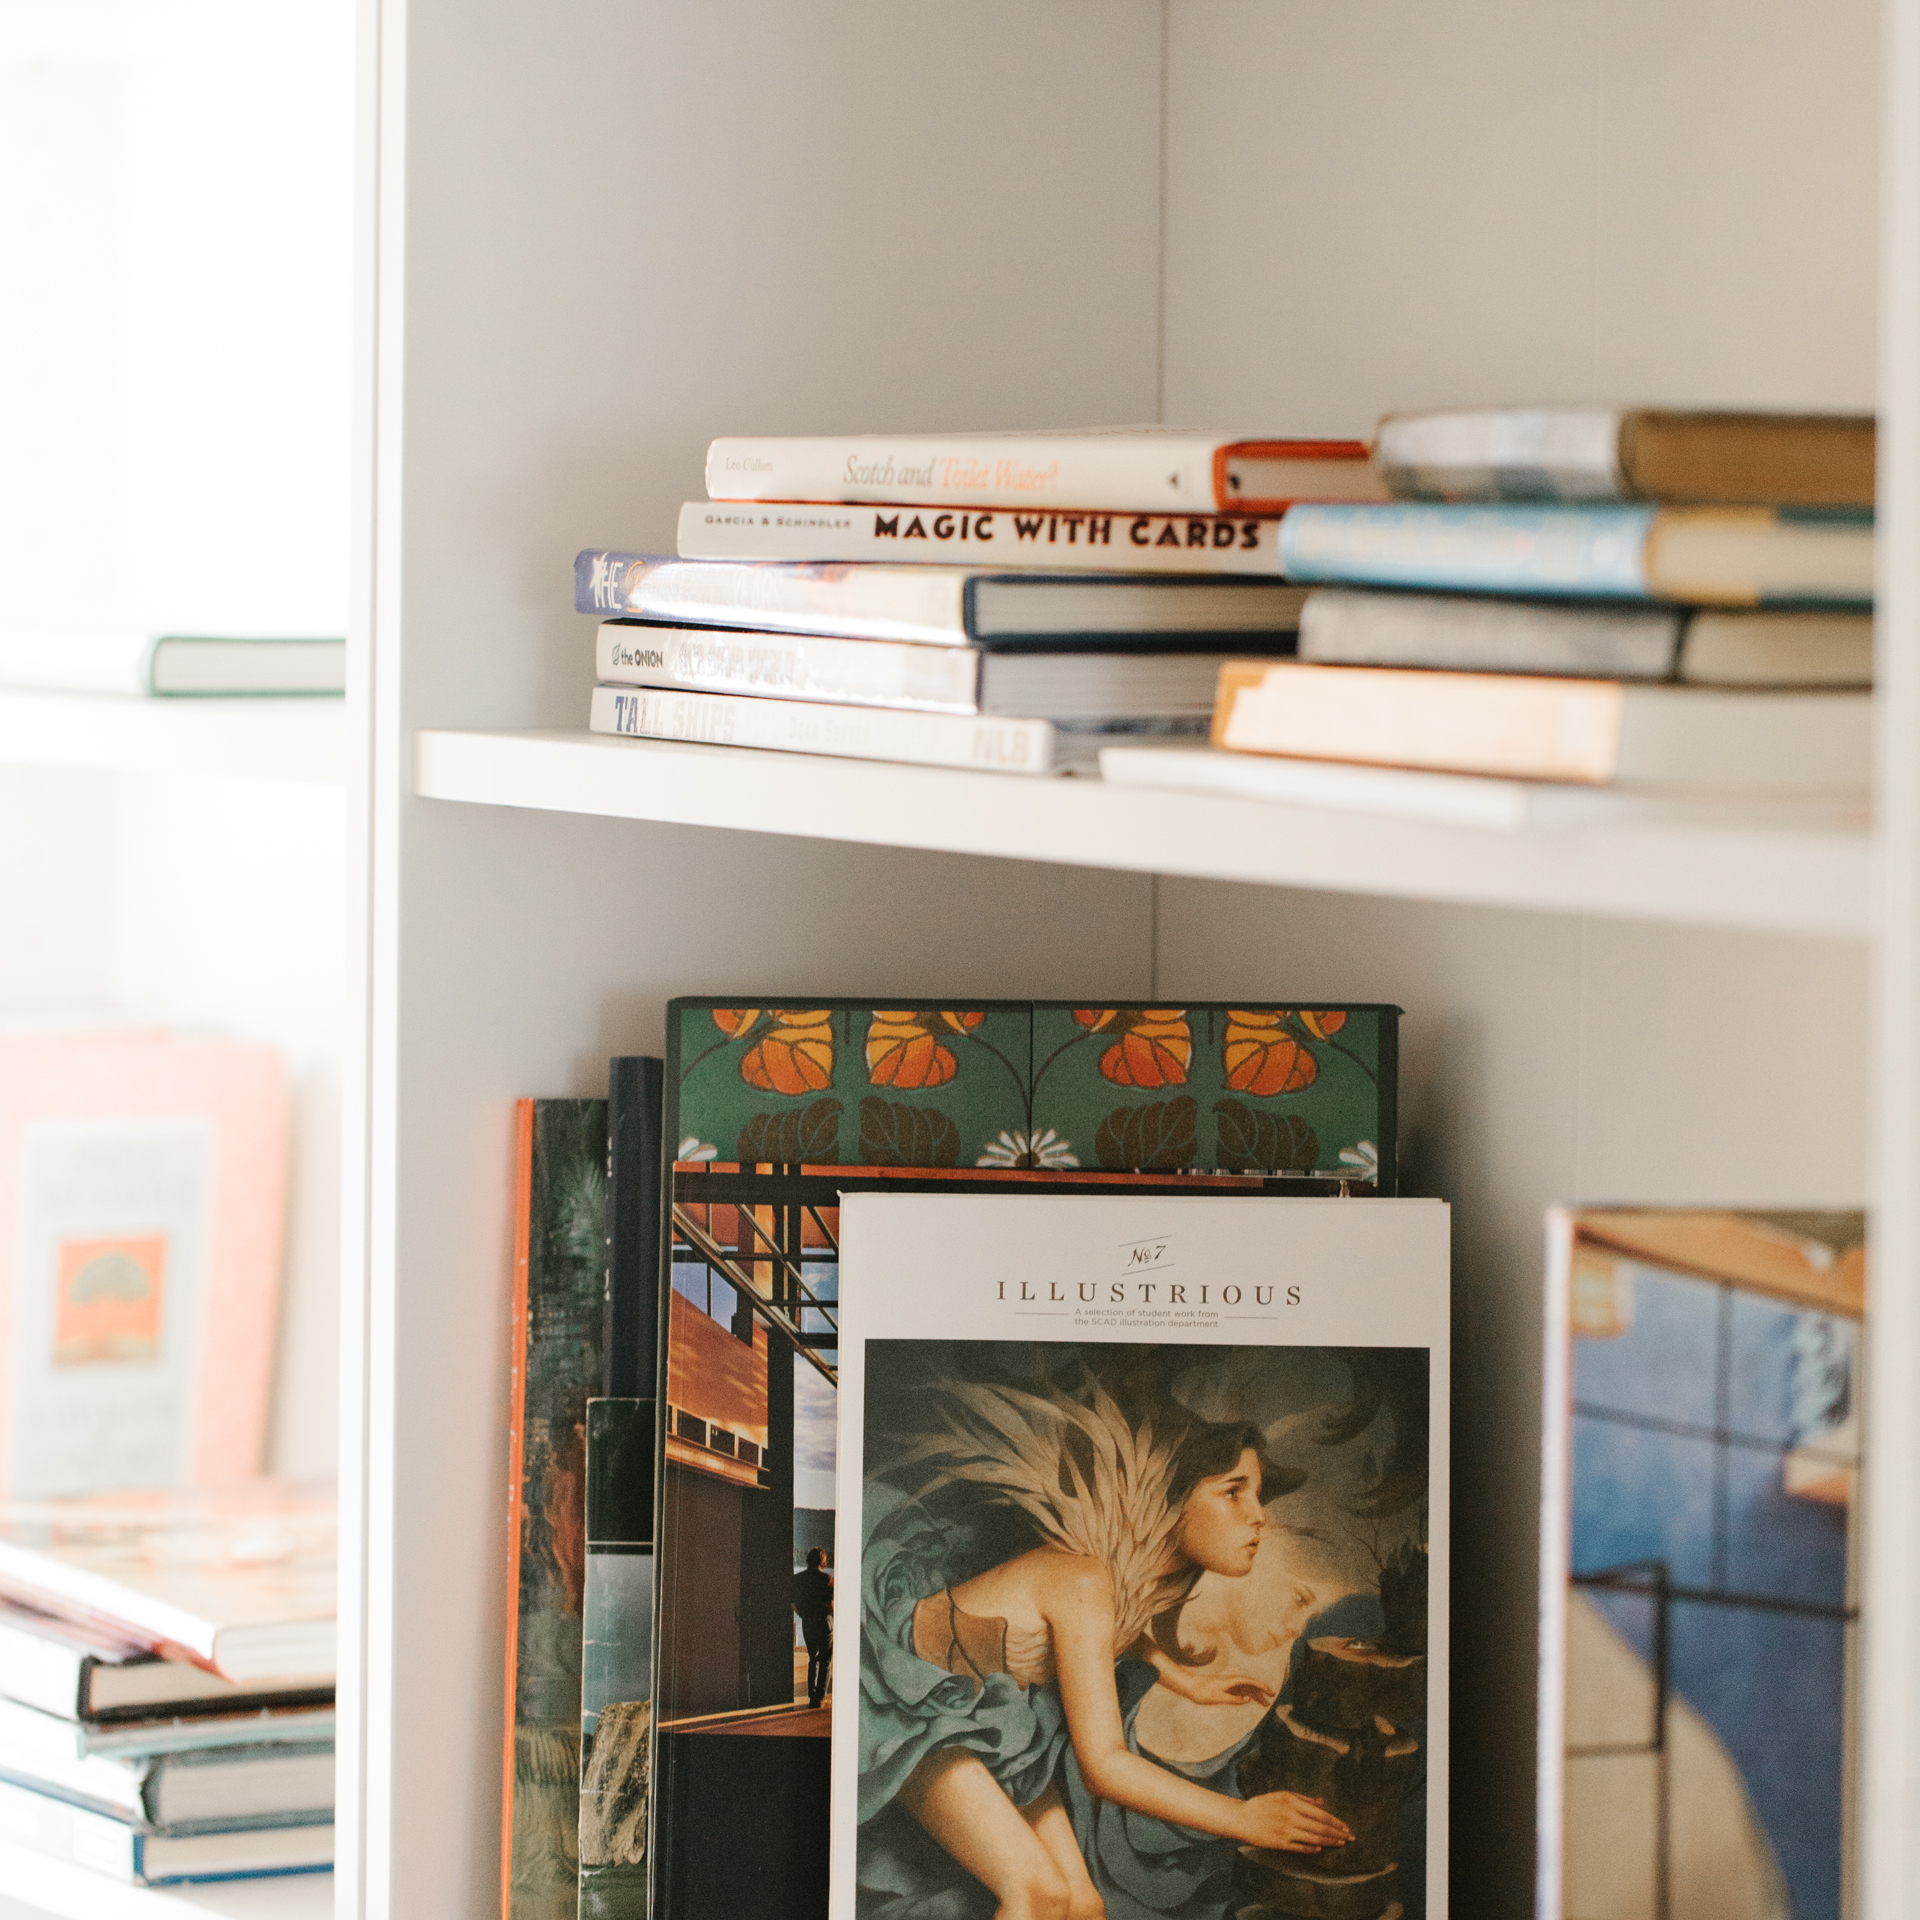 Every guest room is loaded with books. Its like sleeping in a cushy library. Only with fluffy pillows, soft blankets, and a hot breakfast.